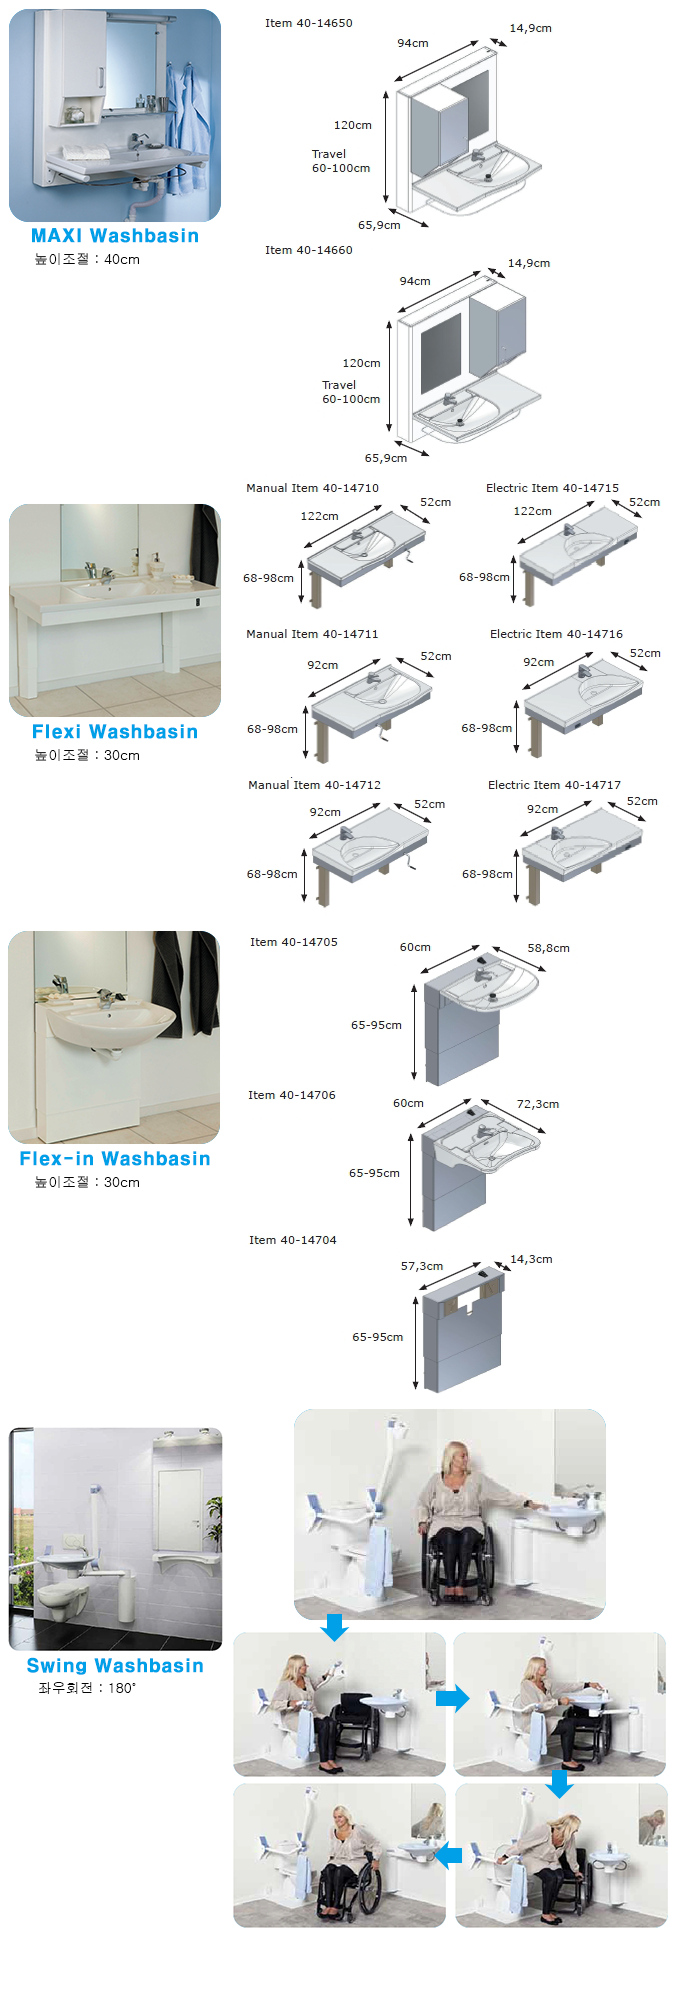 washbasin.png